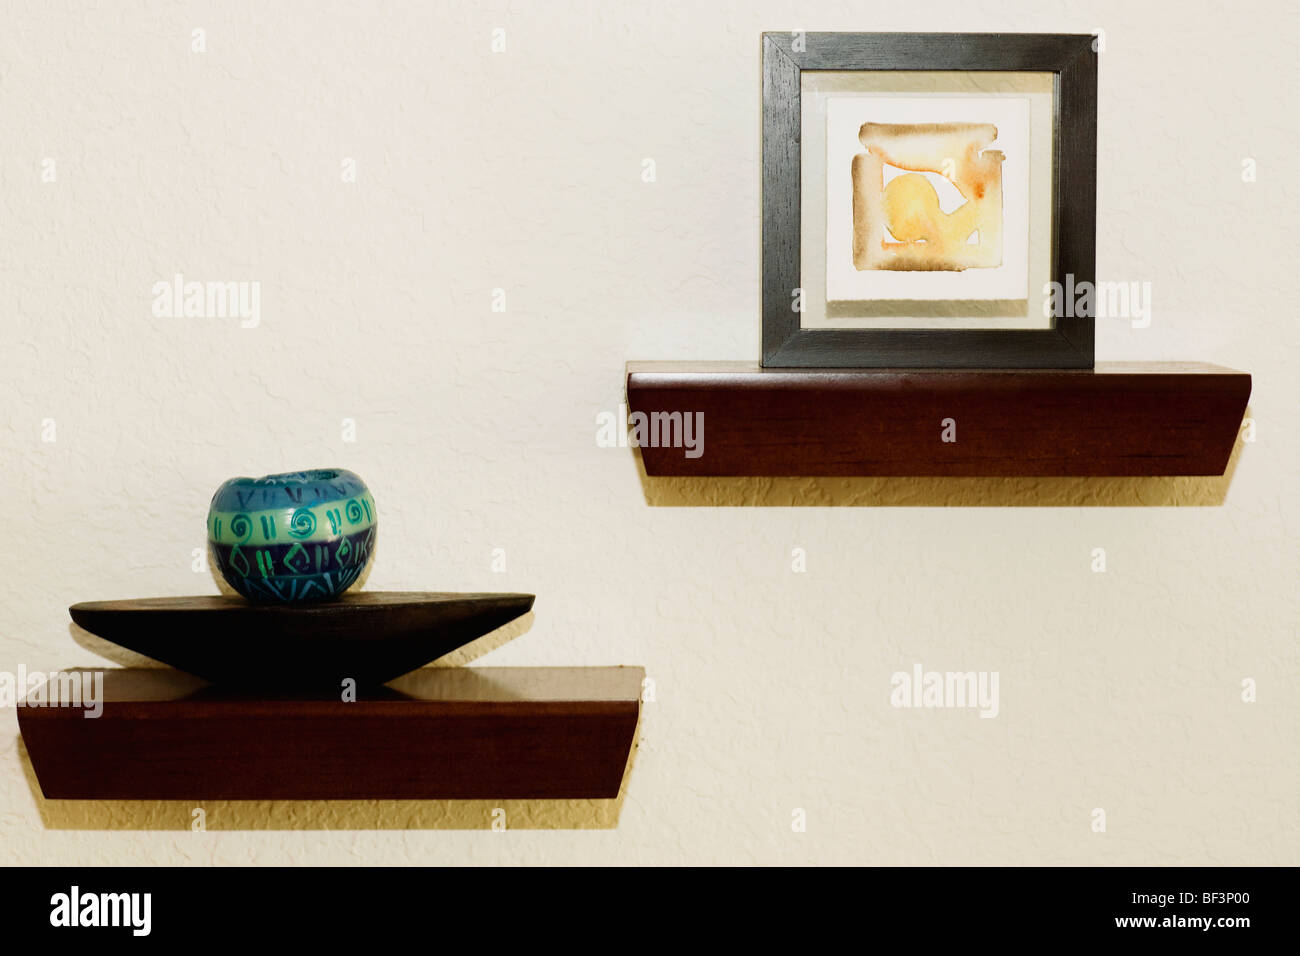 Charmant Showpieces And Paintings In A Living Room